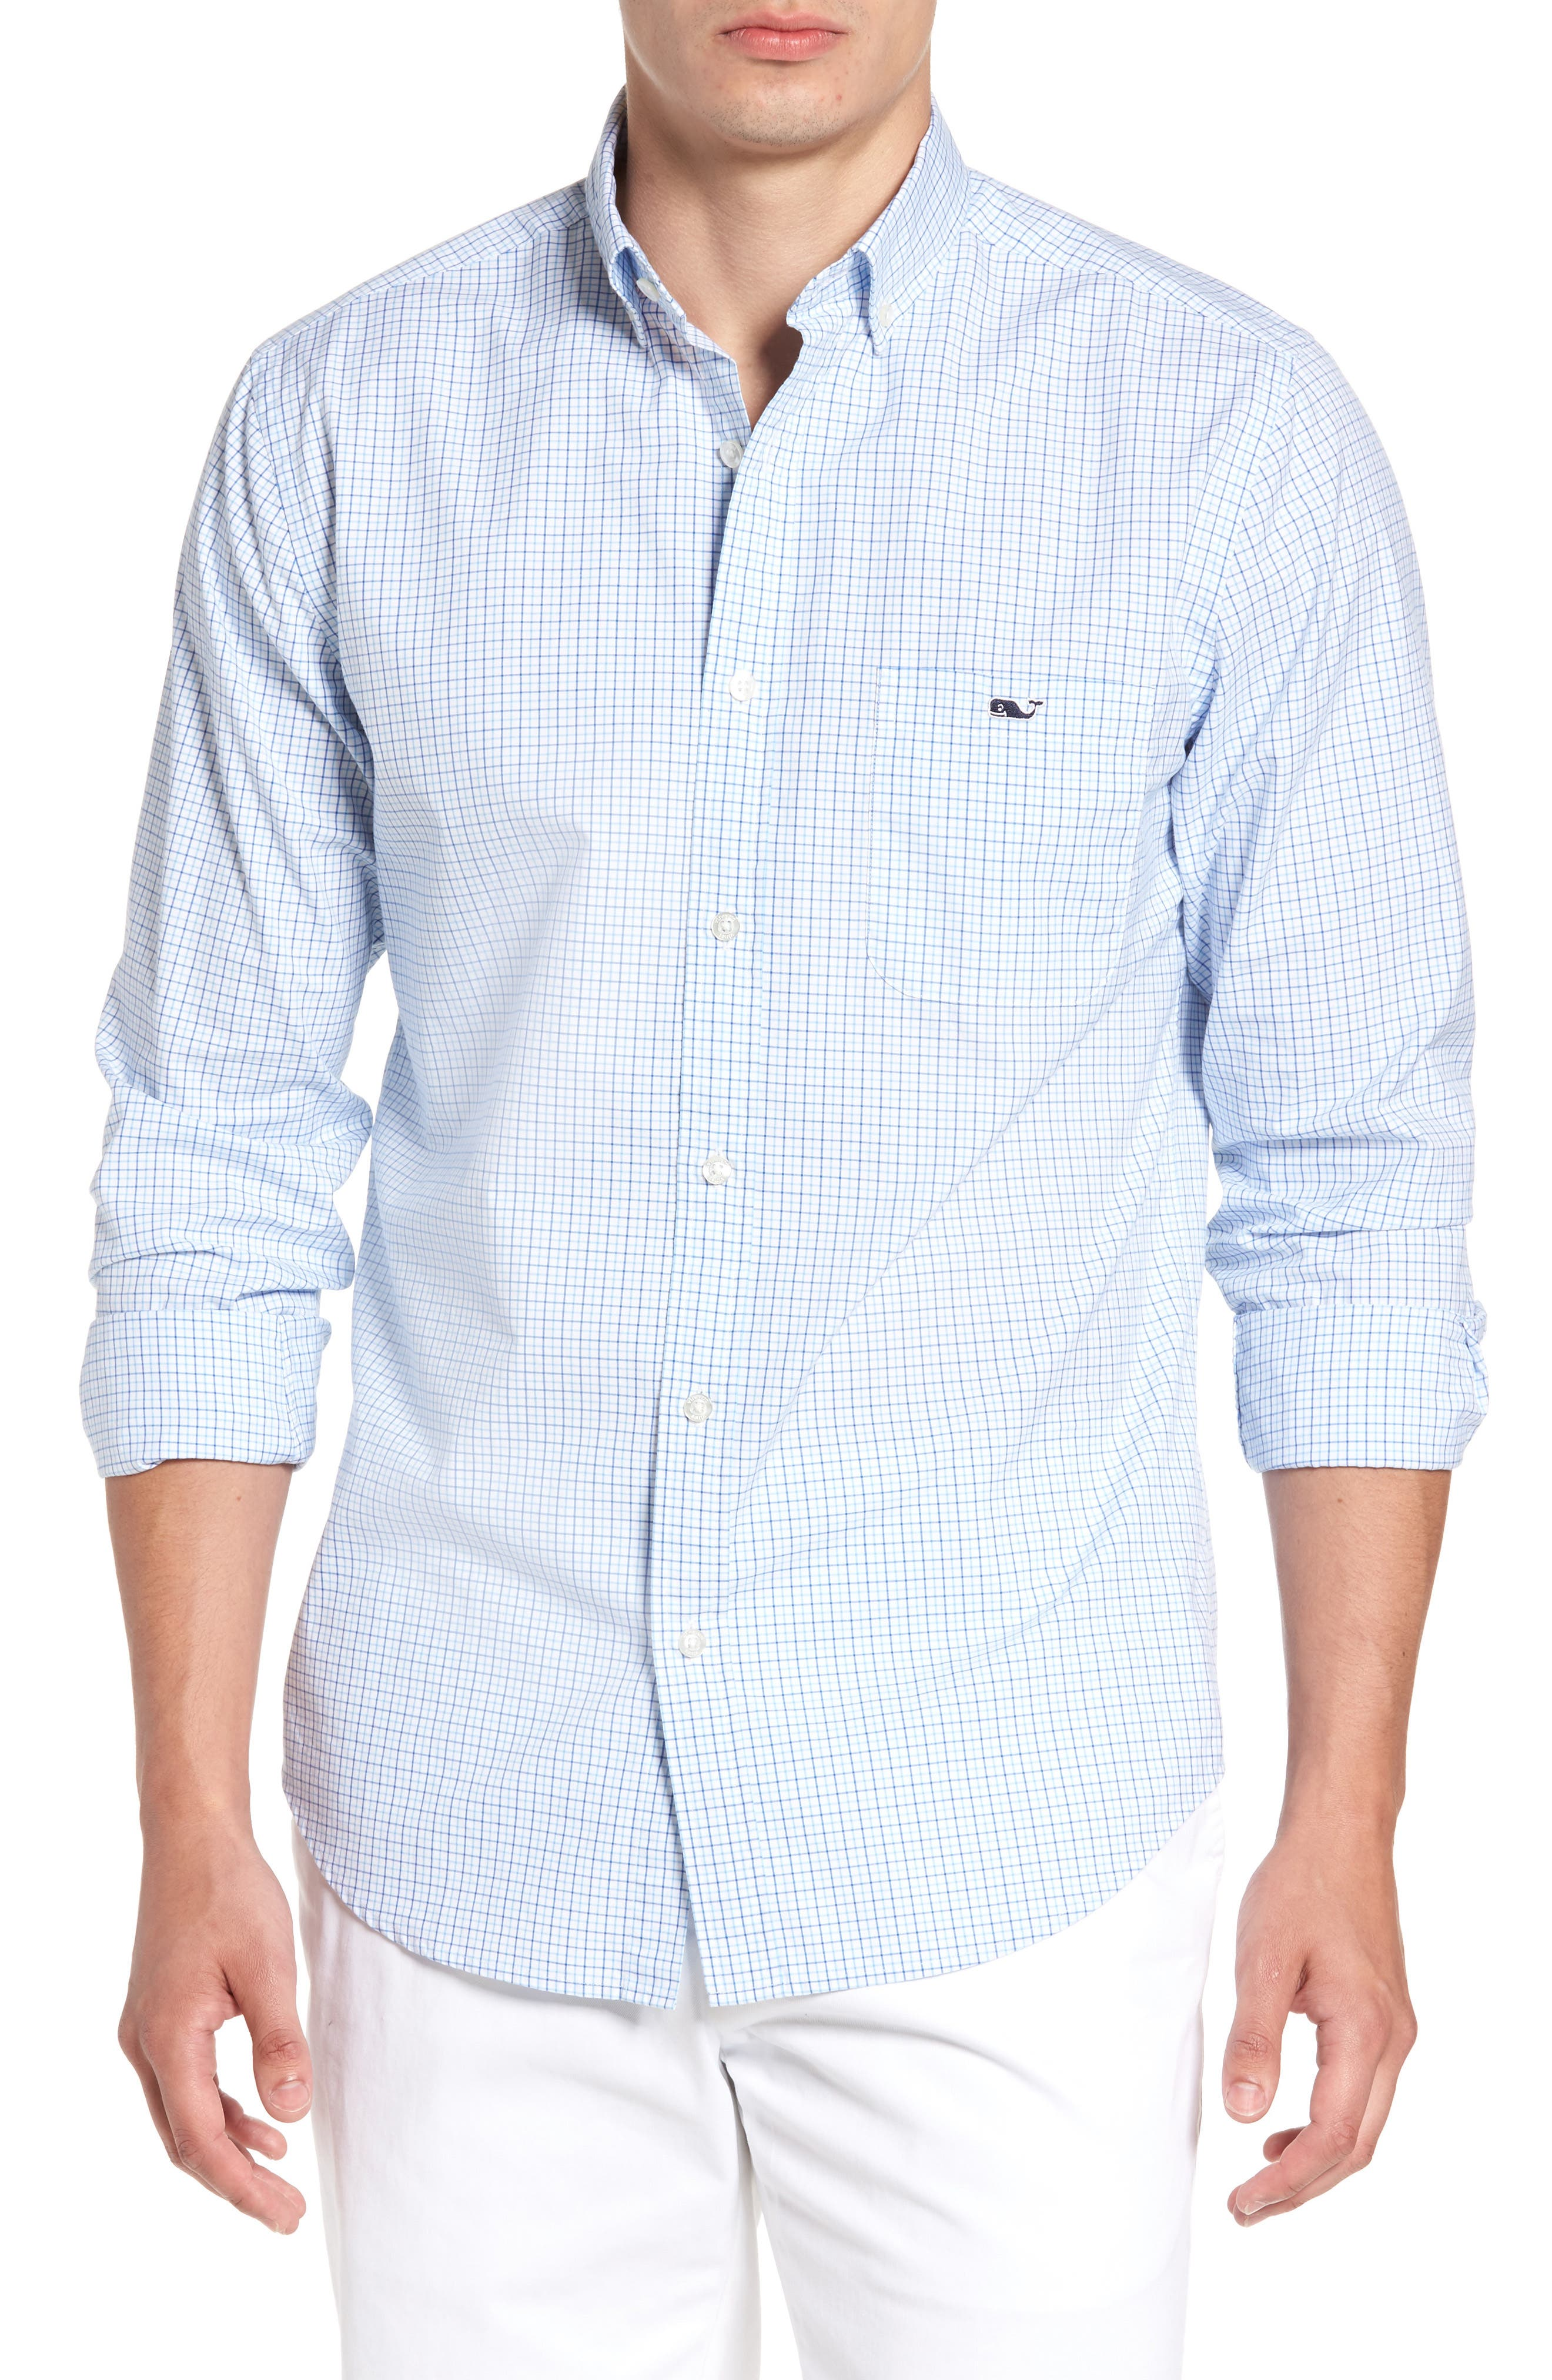 Twin Pond Classic Fit Tattersall Check Sport Shirt,                         Main,                         color, 484